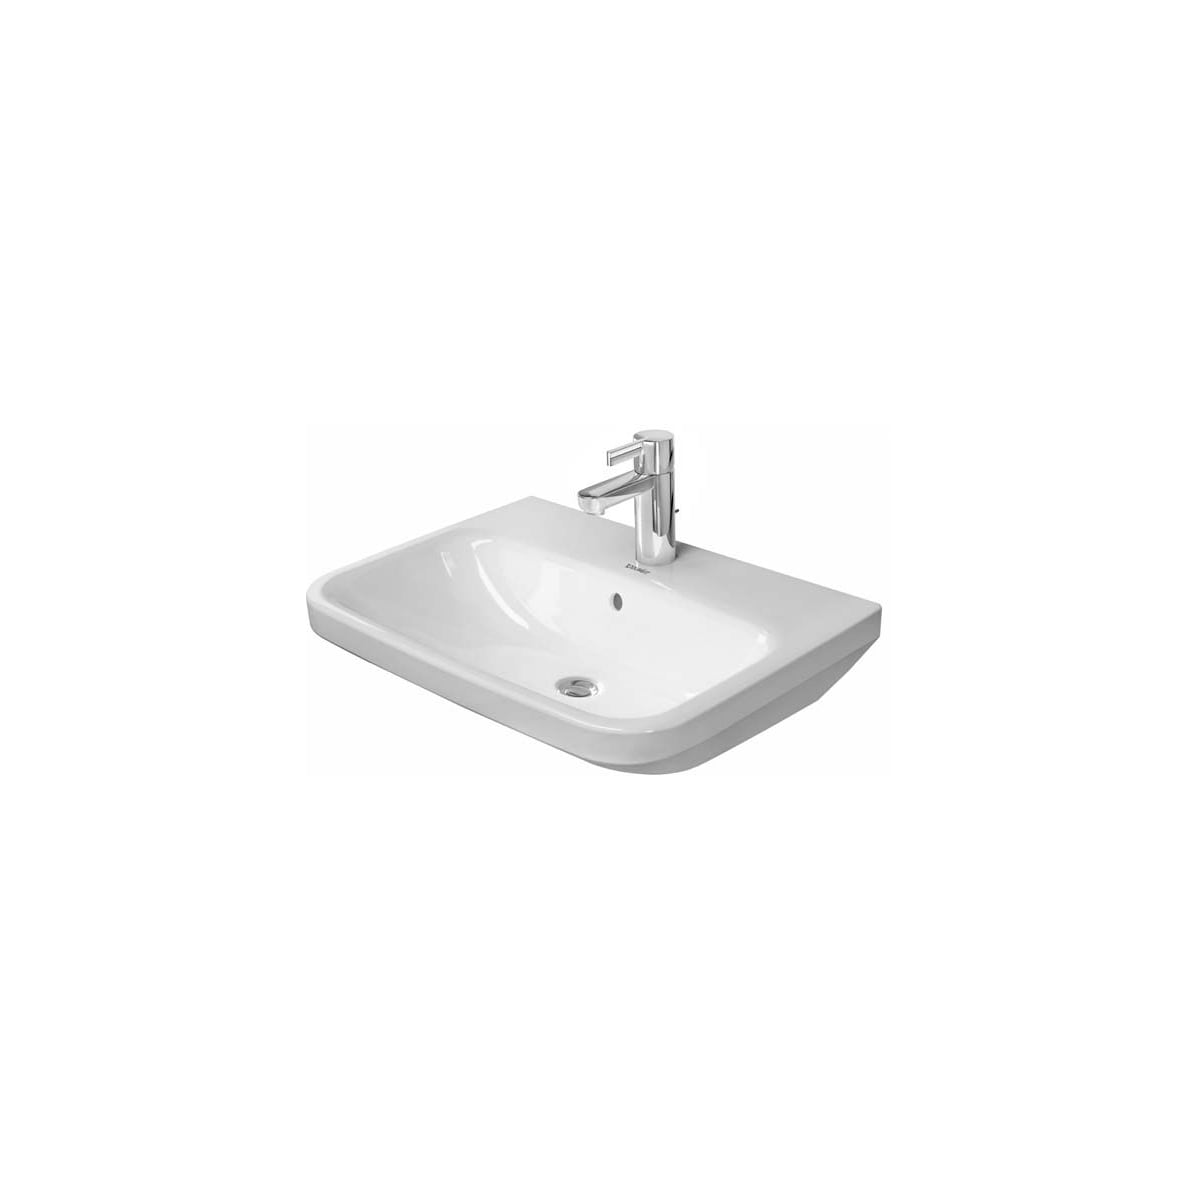 Duravit 2319600000 White Glazed Underside Durastyle 23 5 8 Rectangular Ceramic Wall Mounted Bathroom Sink With Overflow And Single Faucet Hole Faucetdirect Com